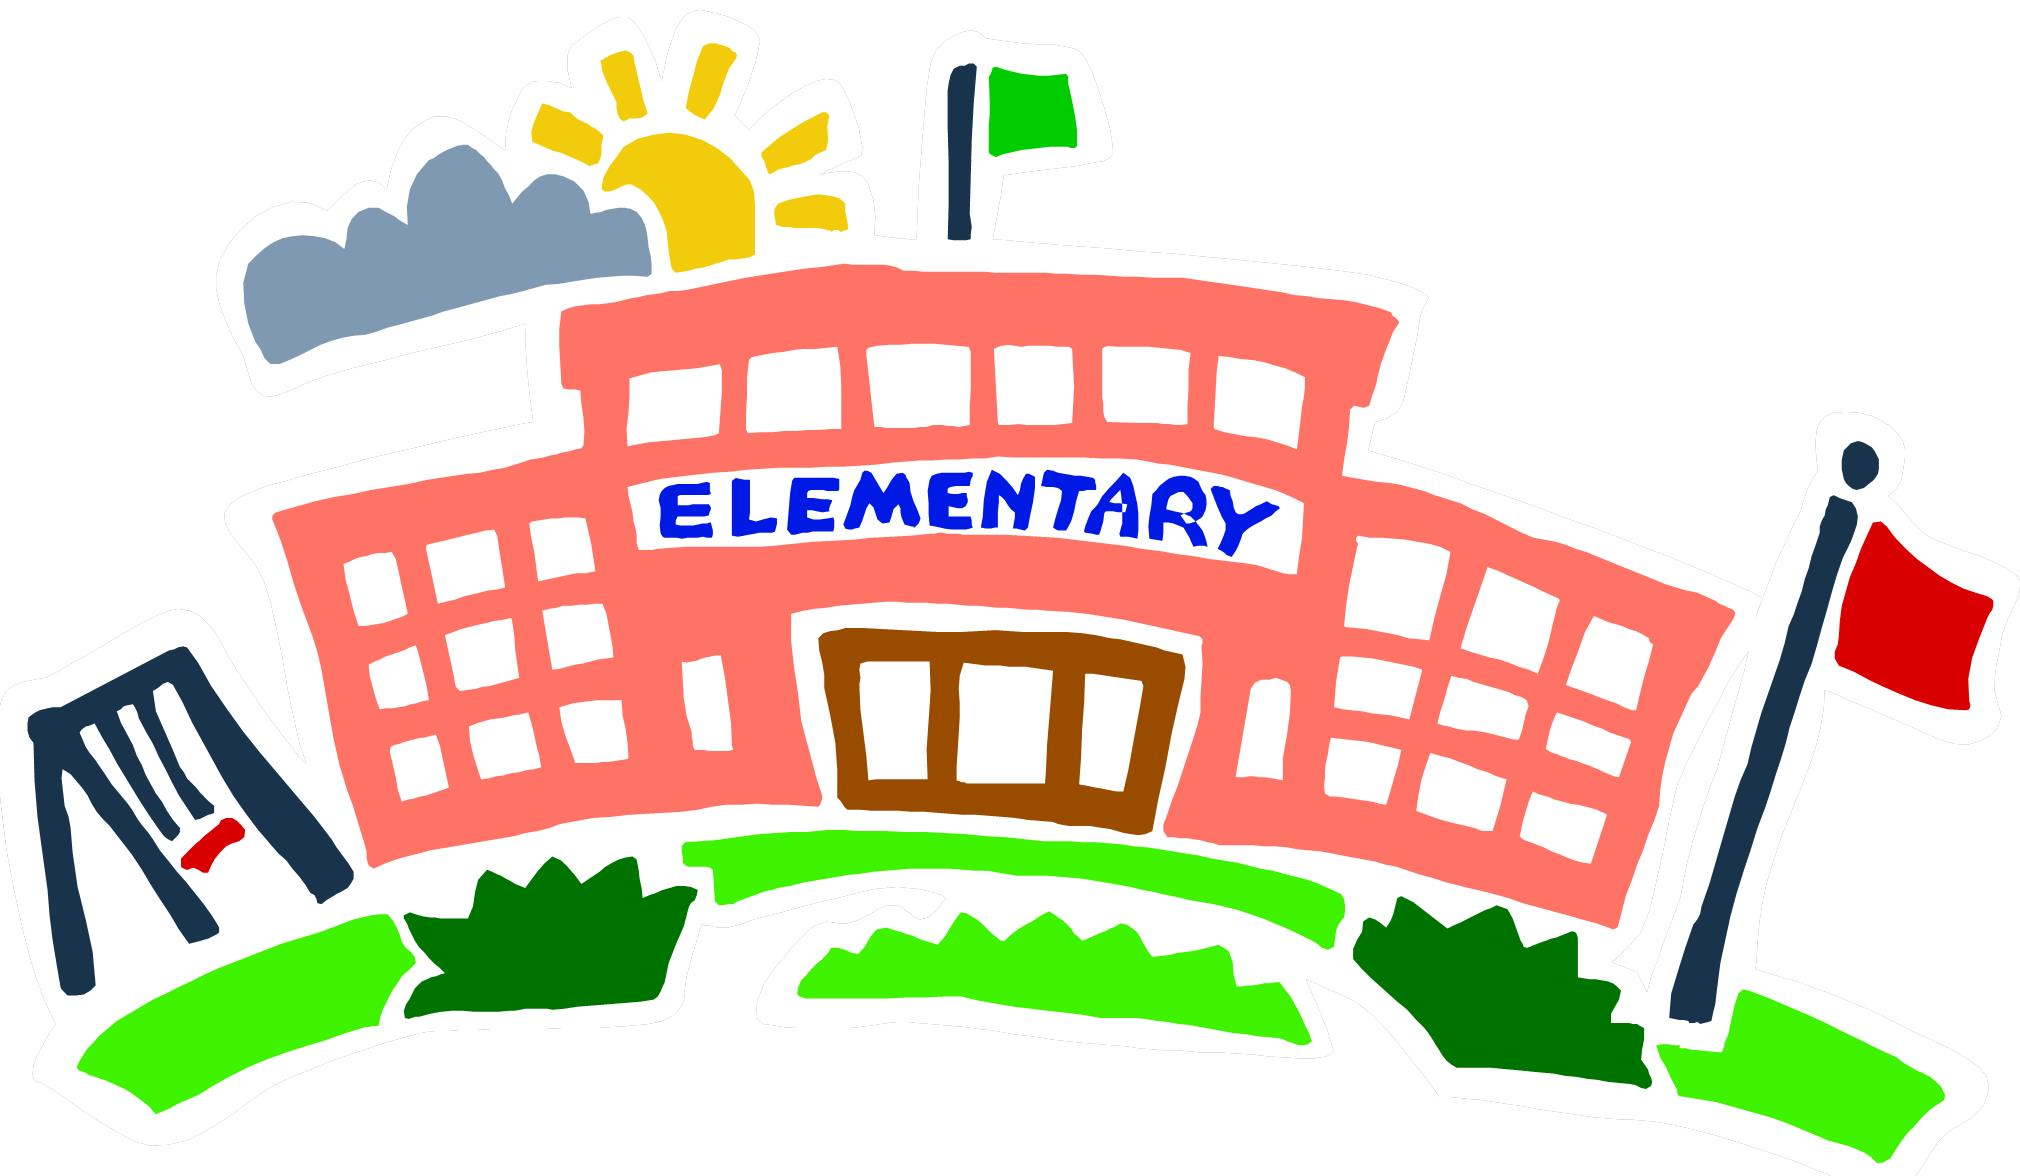 Free School Clip Art From - Vergilis Cli-Free School Clip Art From - Vergilis Clipart; Elementary .-17